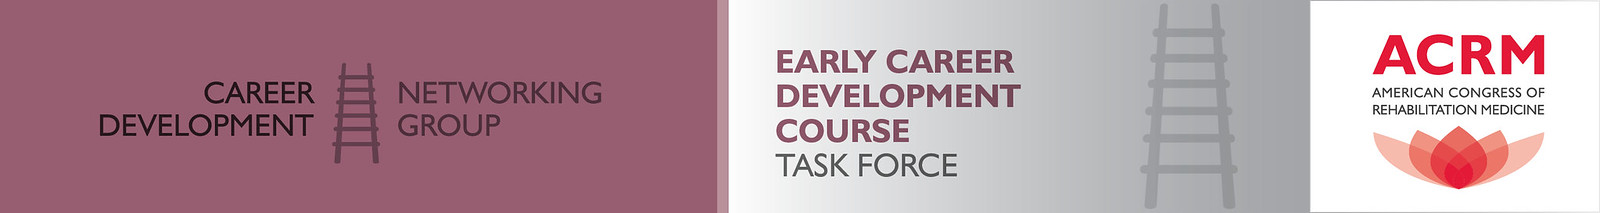 Early Career Development Course Task Force header